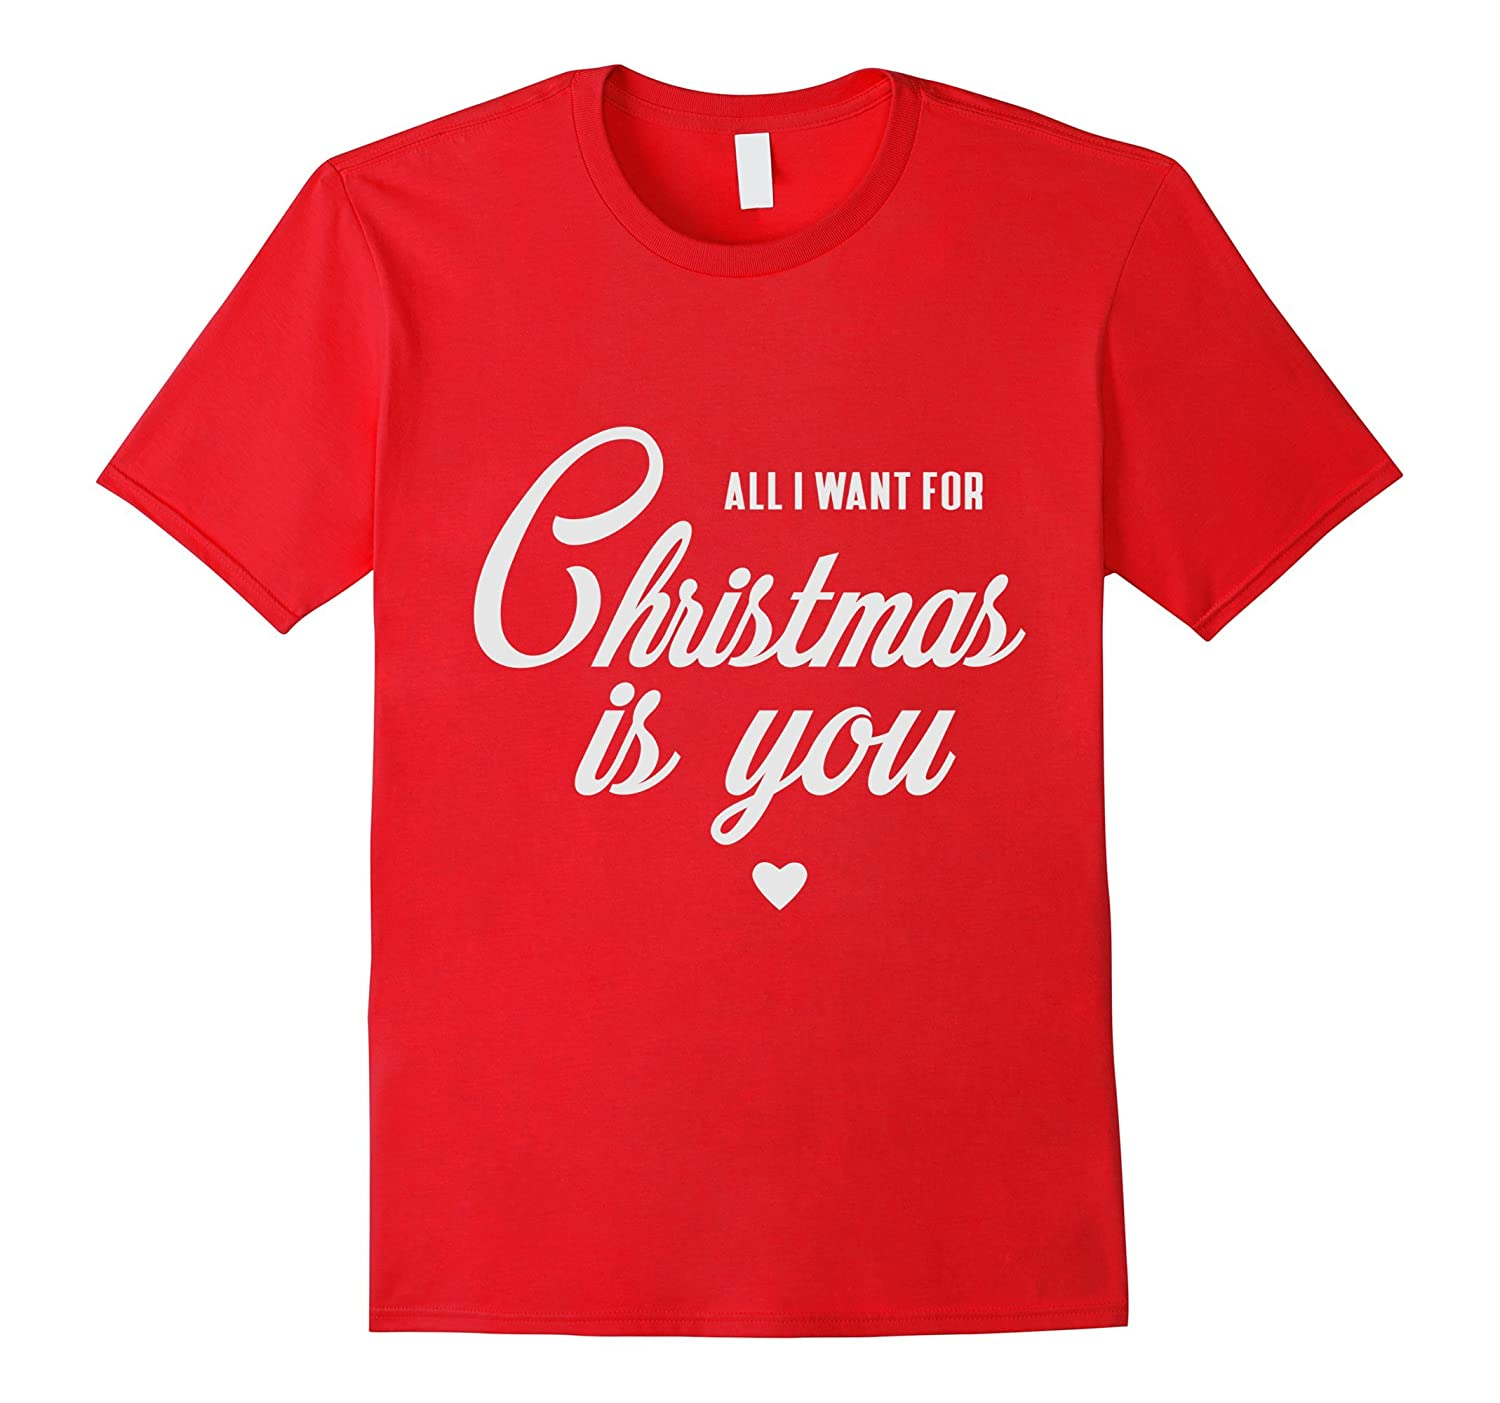 ALL I WANT FOR CHRISTMAS IS YOU T-Shirt Lovely XMAS Shirt